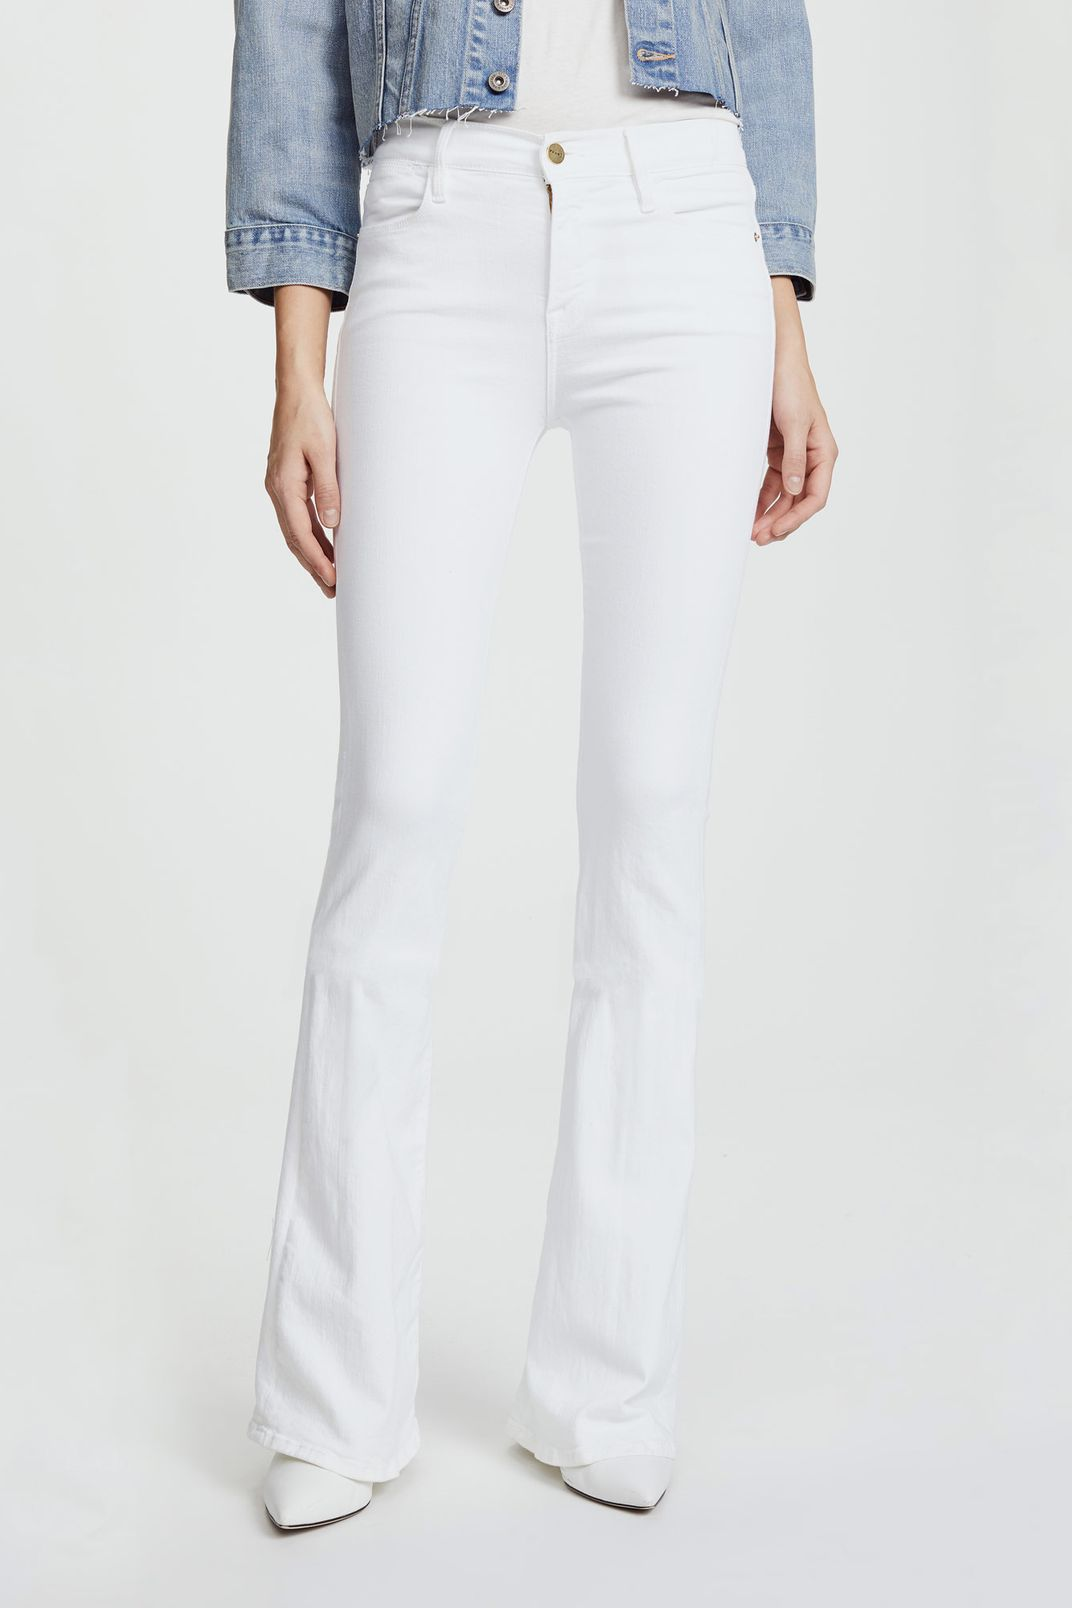 20bfebe9e08 Best white jeans for petite women. Frame Le High Flare Jeans